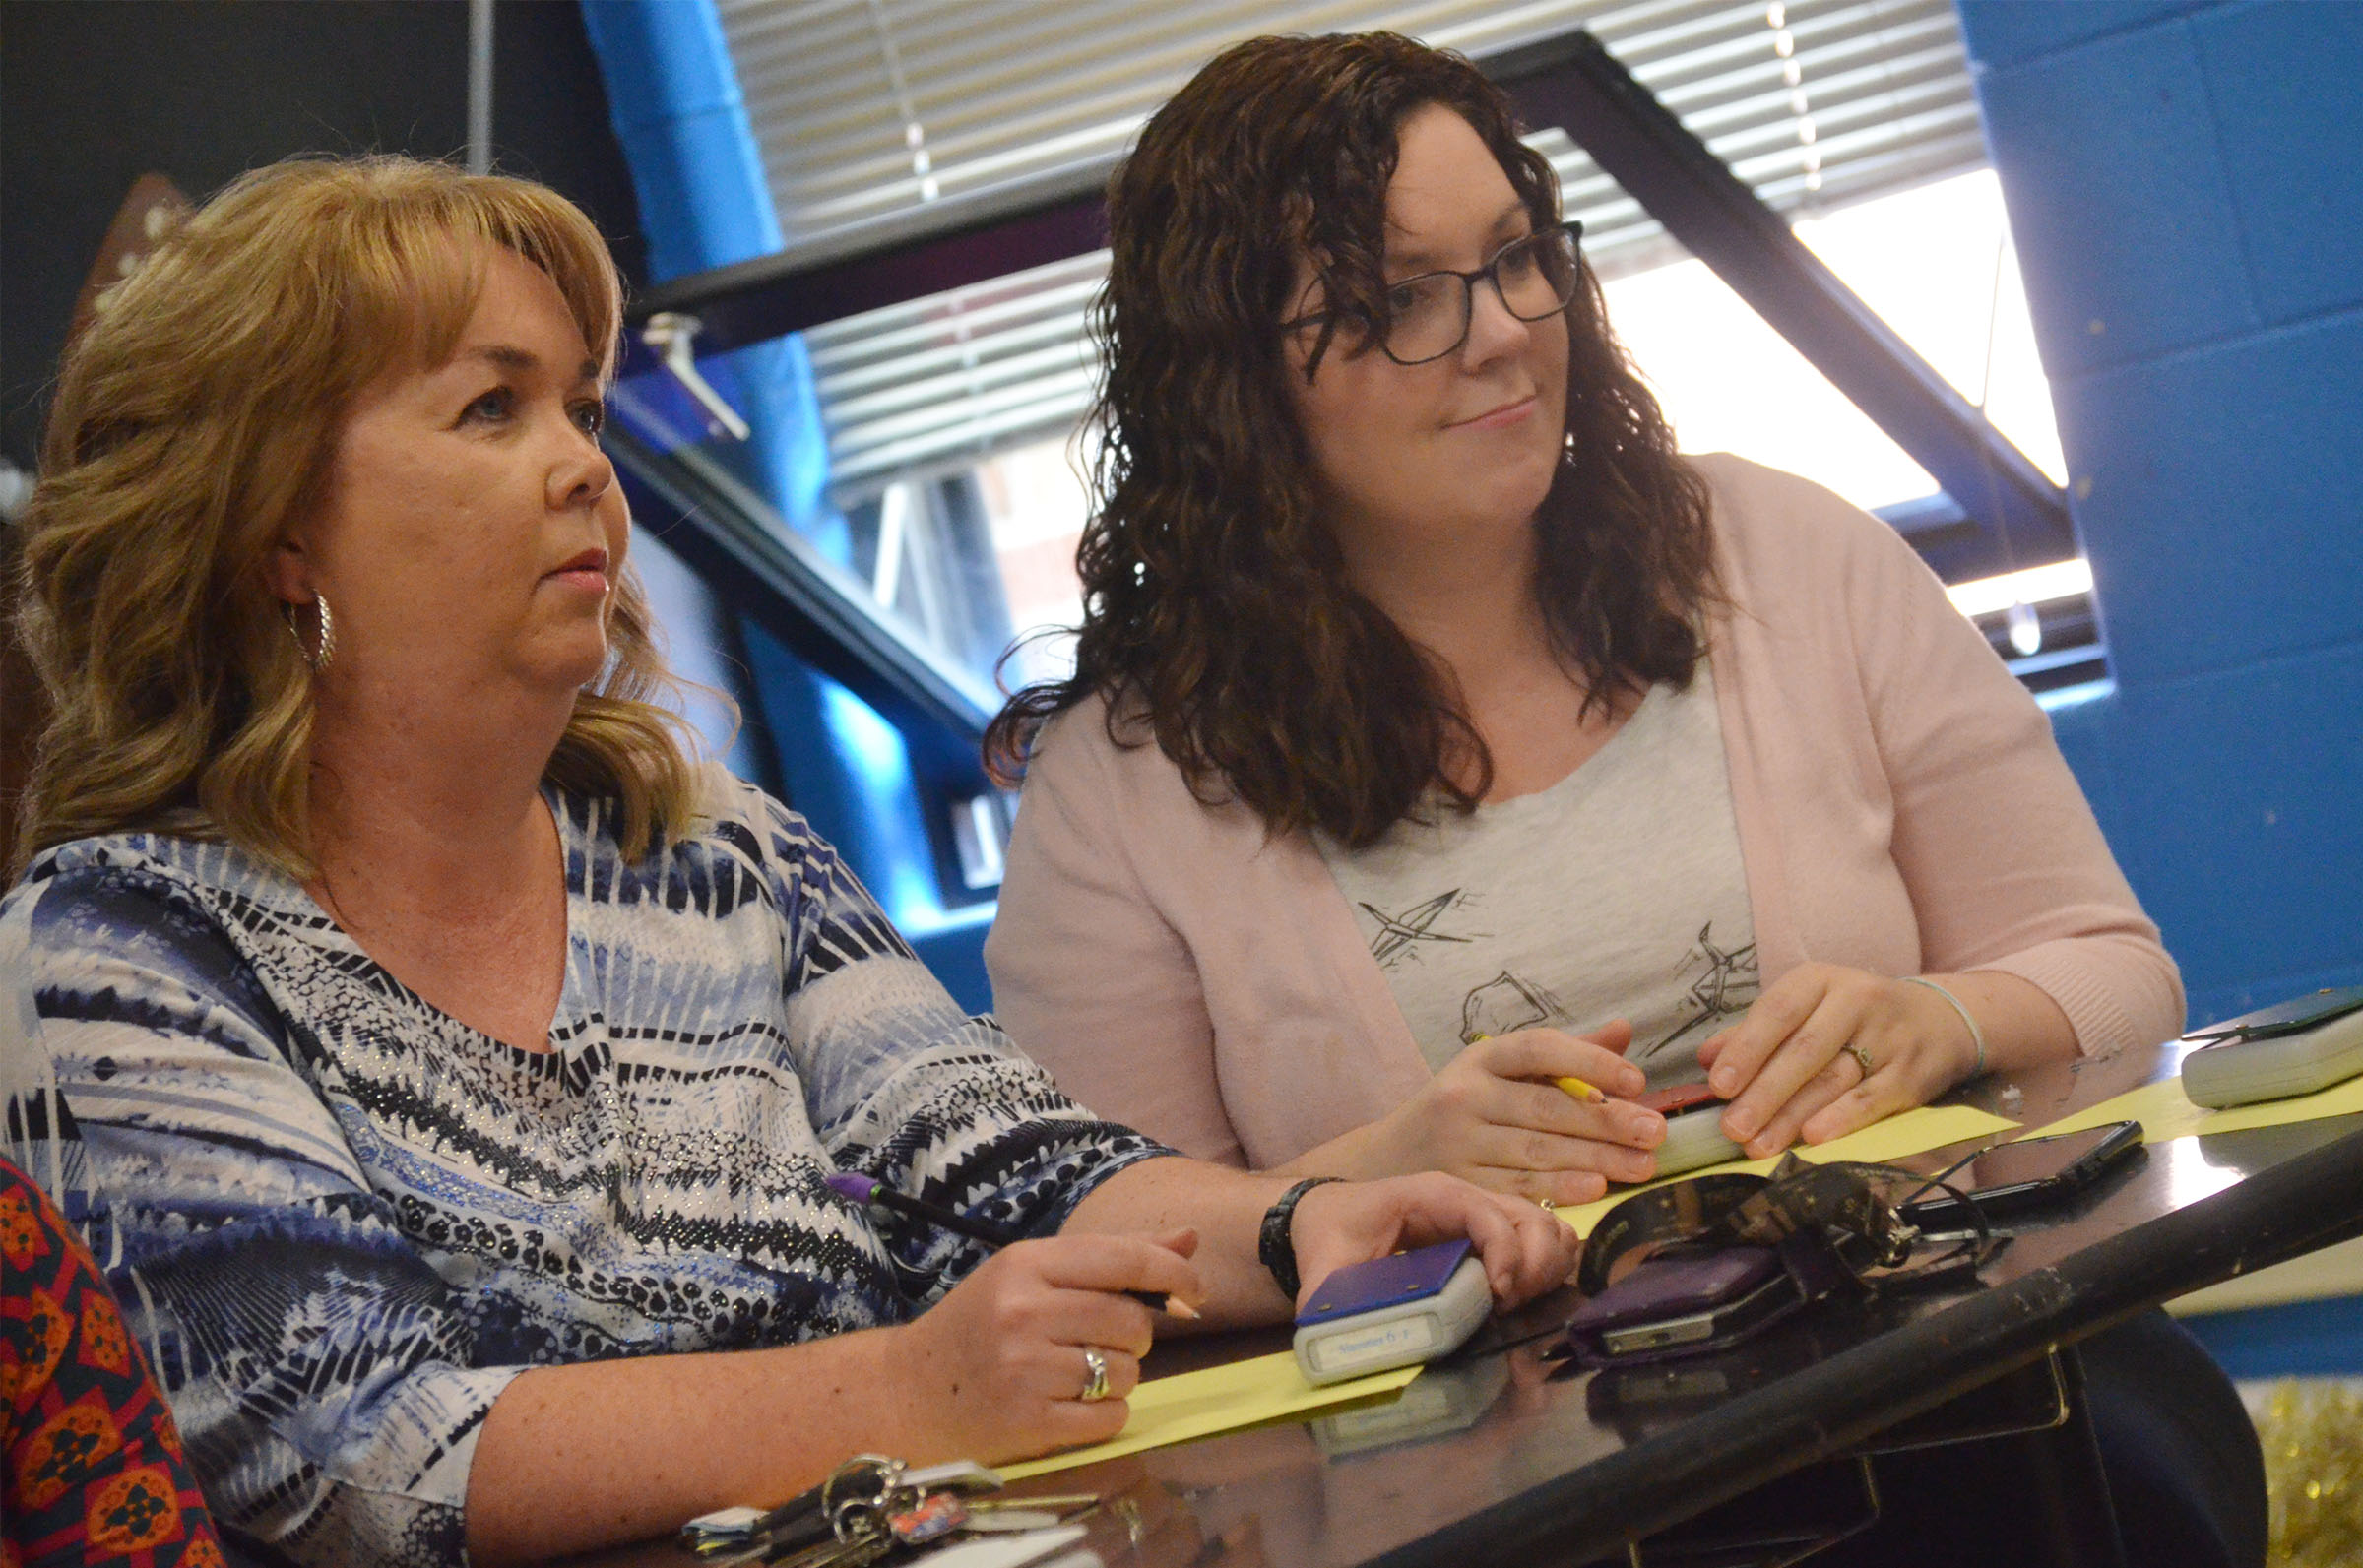 CHS teachers Sonya Kessler, at left, and Lindsay Williams listen to a question.